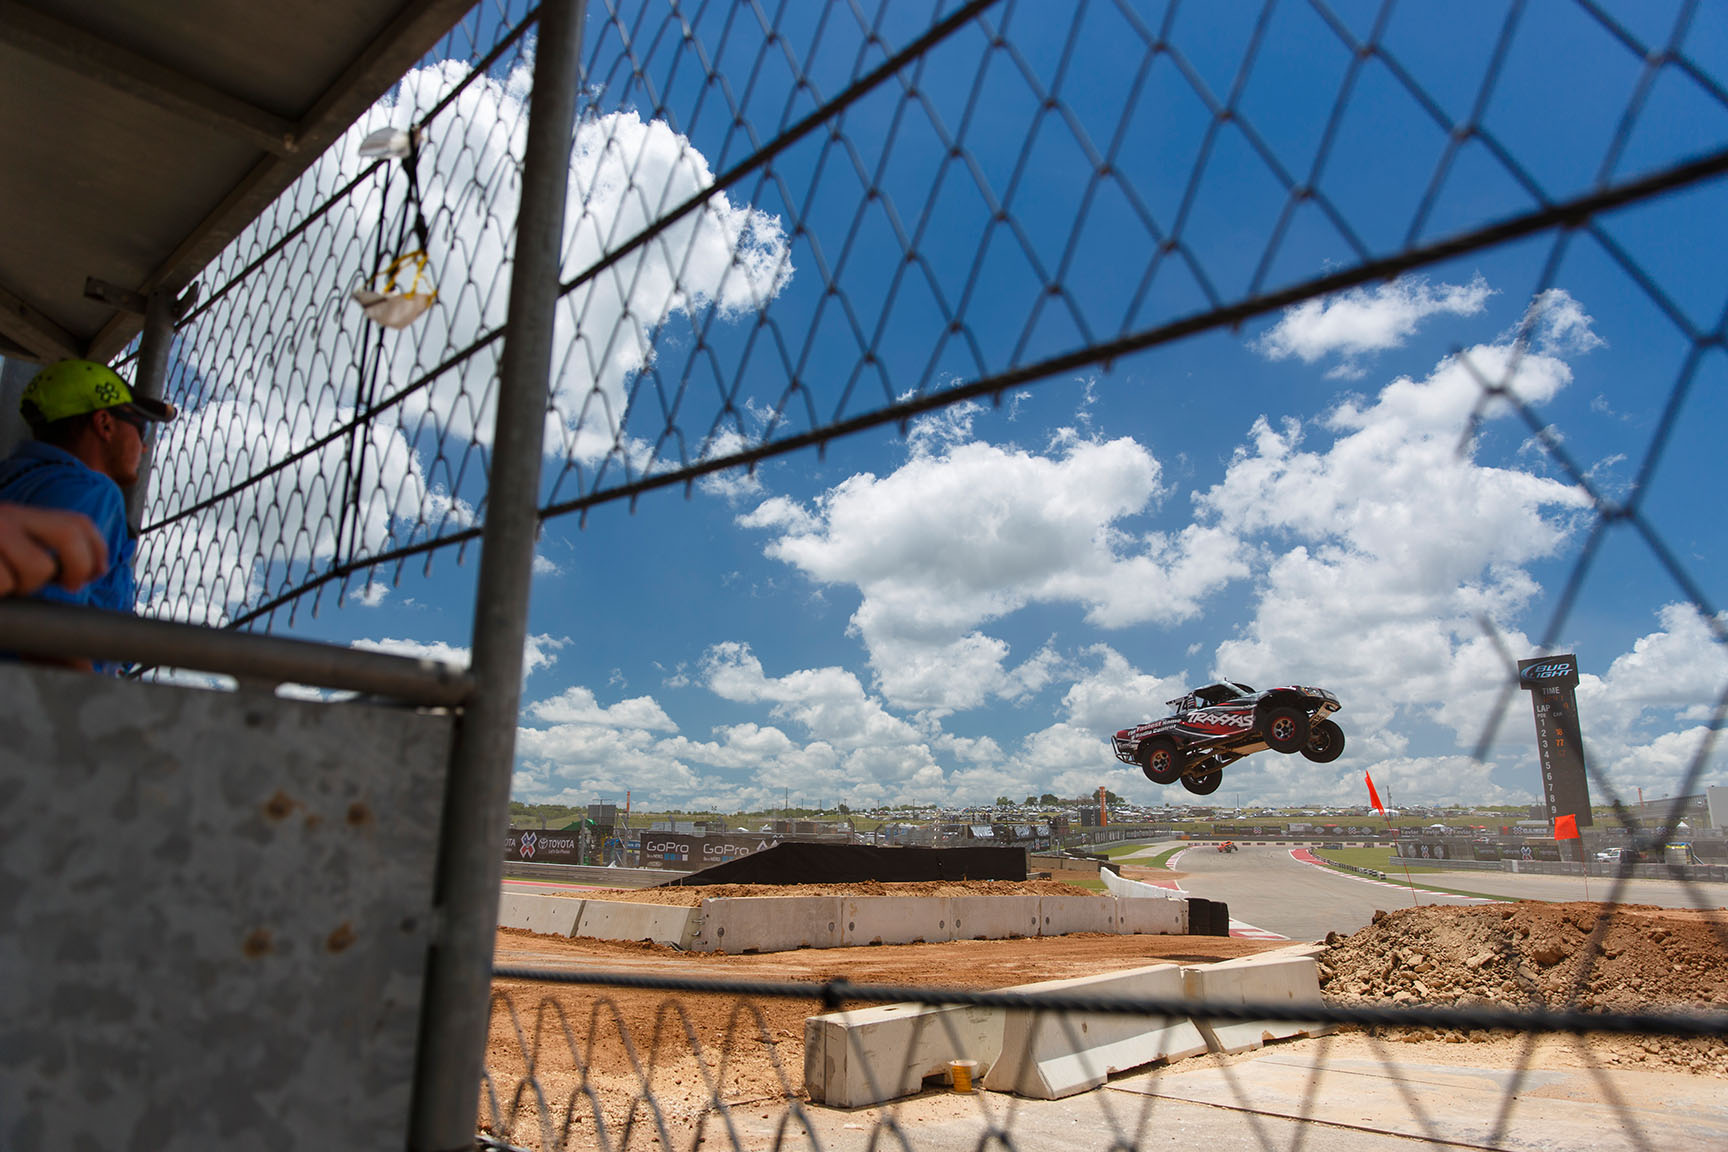 When athletes from other disciplines graduate to legend status, they typically move from their respective discipline to Rally Car Racing. Off-Road Truck Racing is quickly becoming the Rally Car Racing 2.0 of X Games, with athletes from NASCAR, Moto X and more. Seventeen-year-old Sheldon Creed is an exception to the rule, and he walked away with his first X Games gold medal in Off-Road Truck racing on Sunday at X Games Austin 2015.